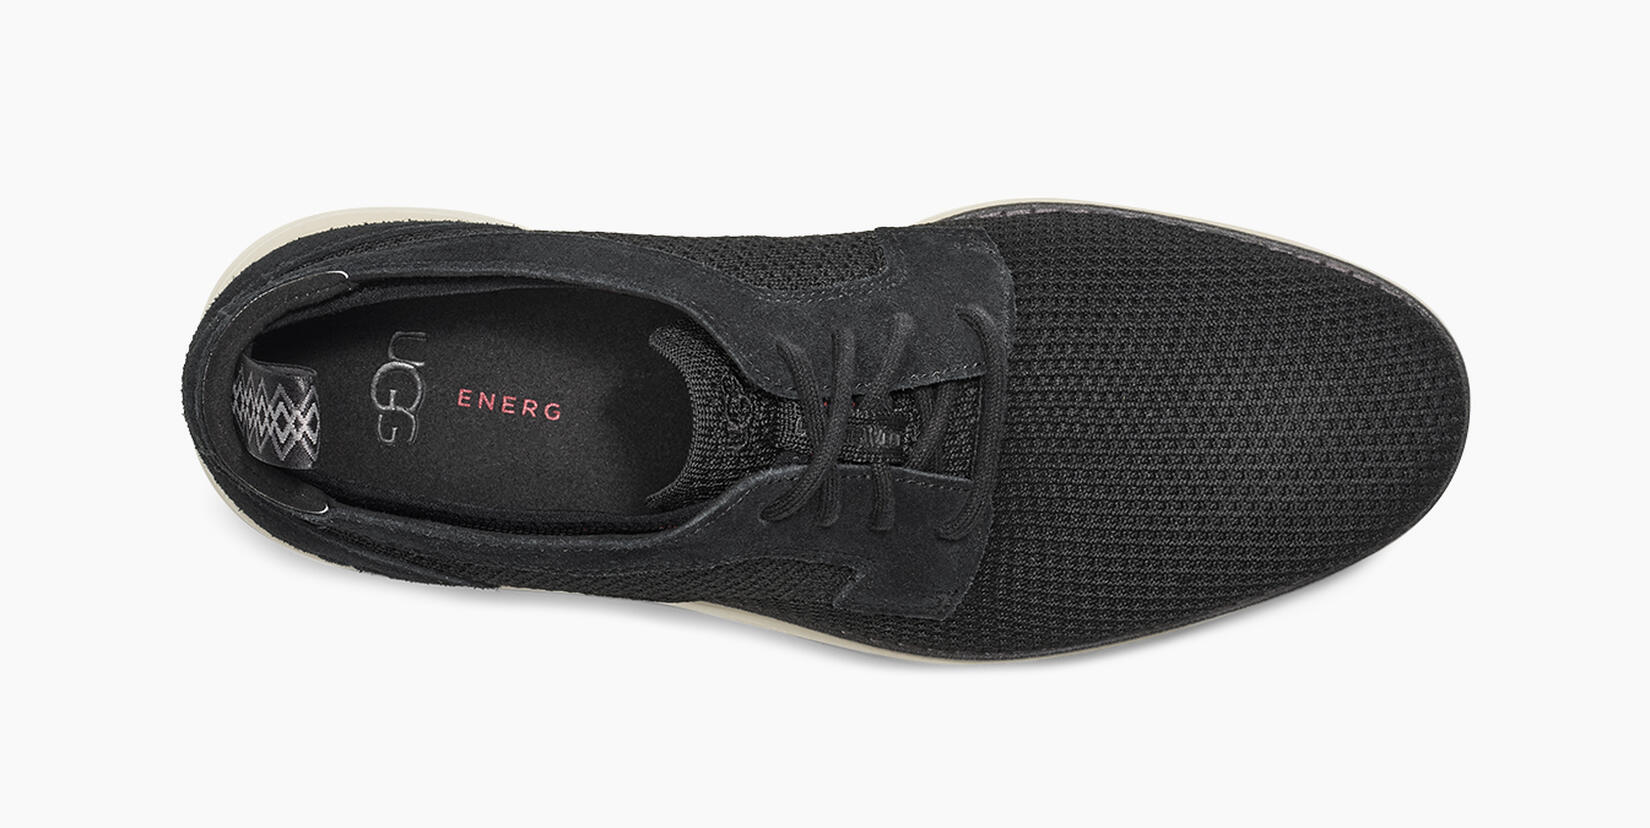 Union Derby HyperWeave Chukka